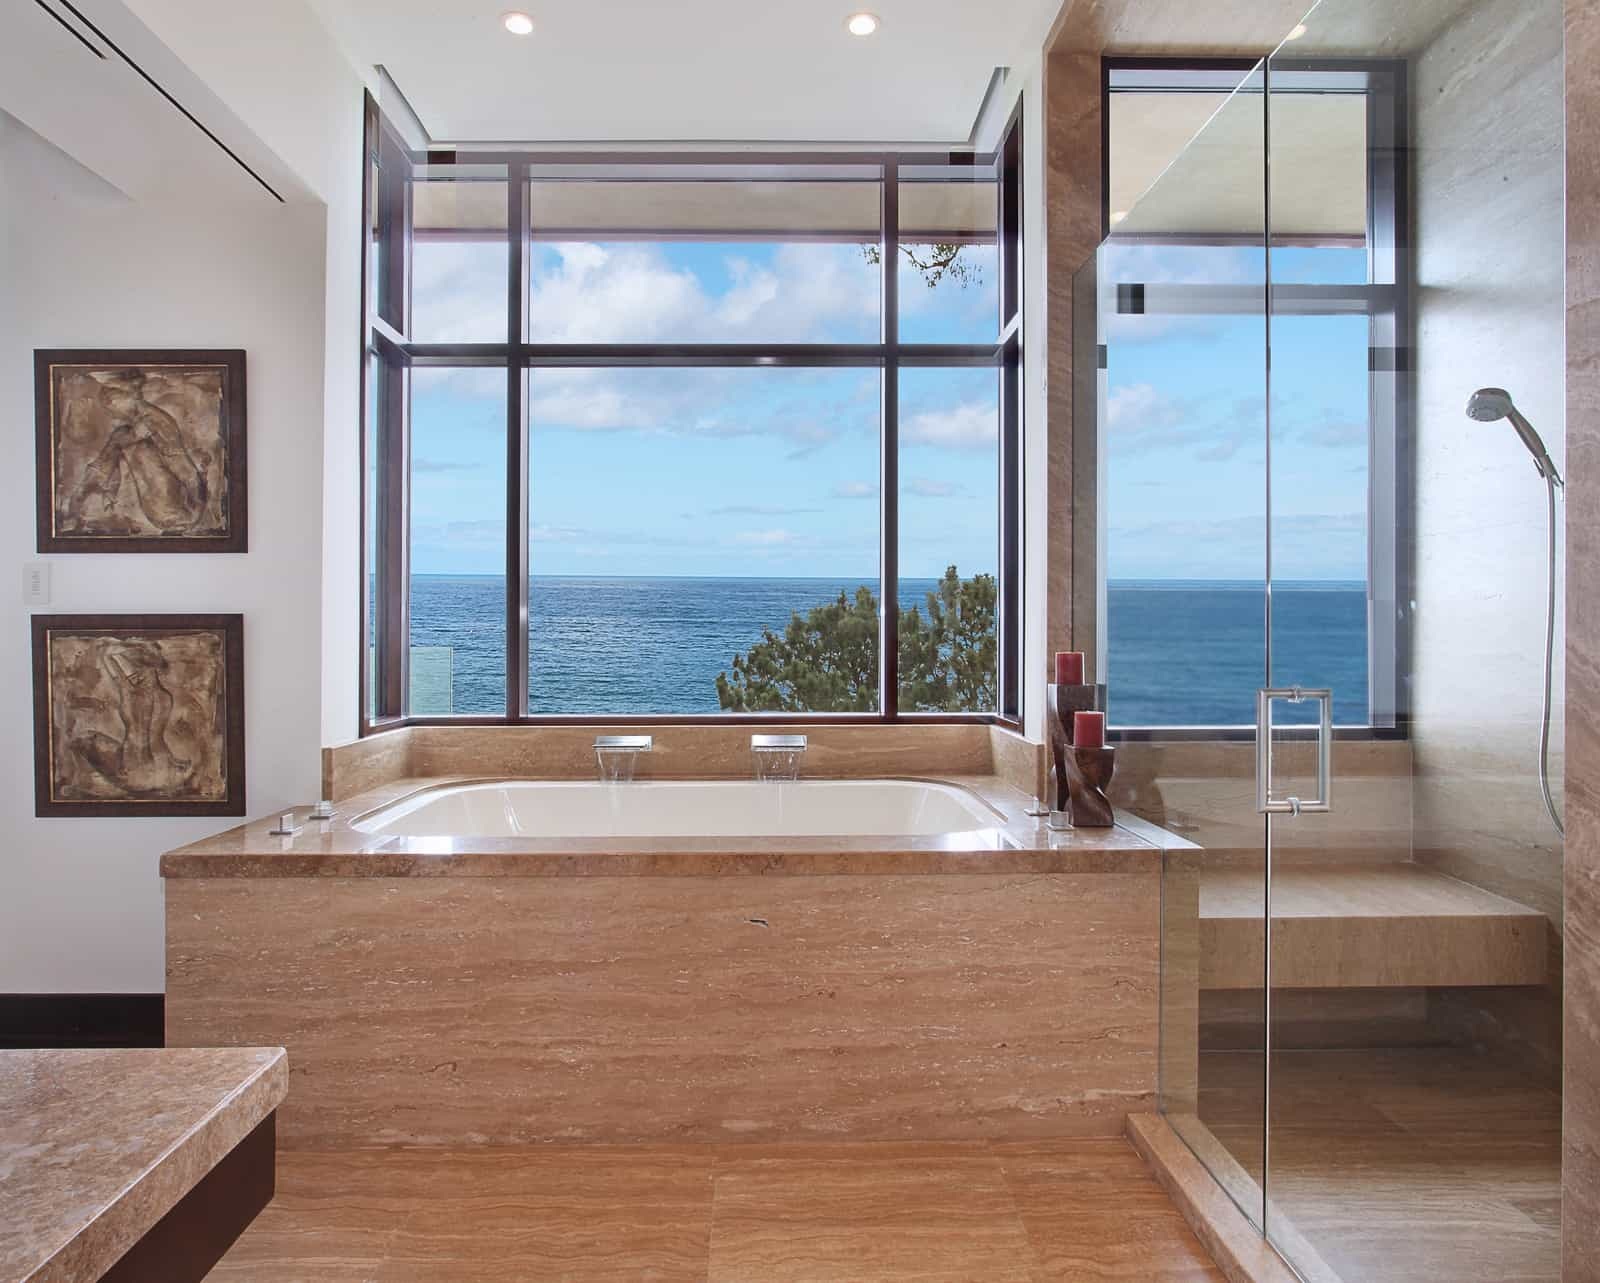 Contemporary Master Bathroom With Large Glass Windows (Image 12 of 29)